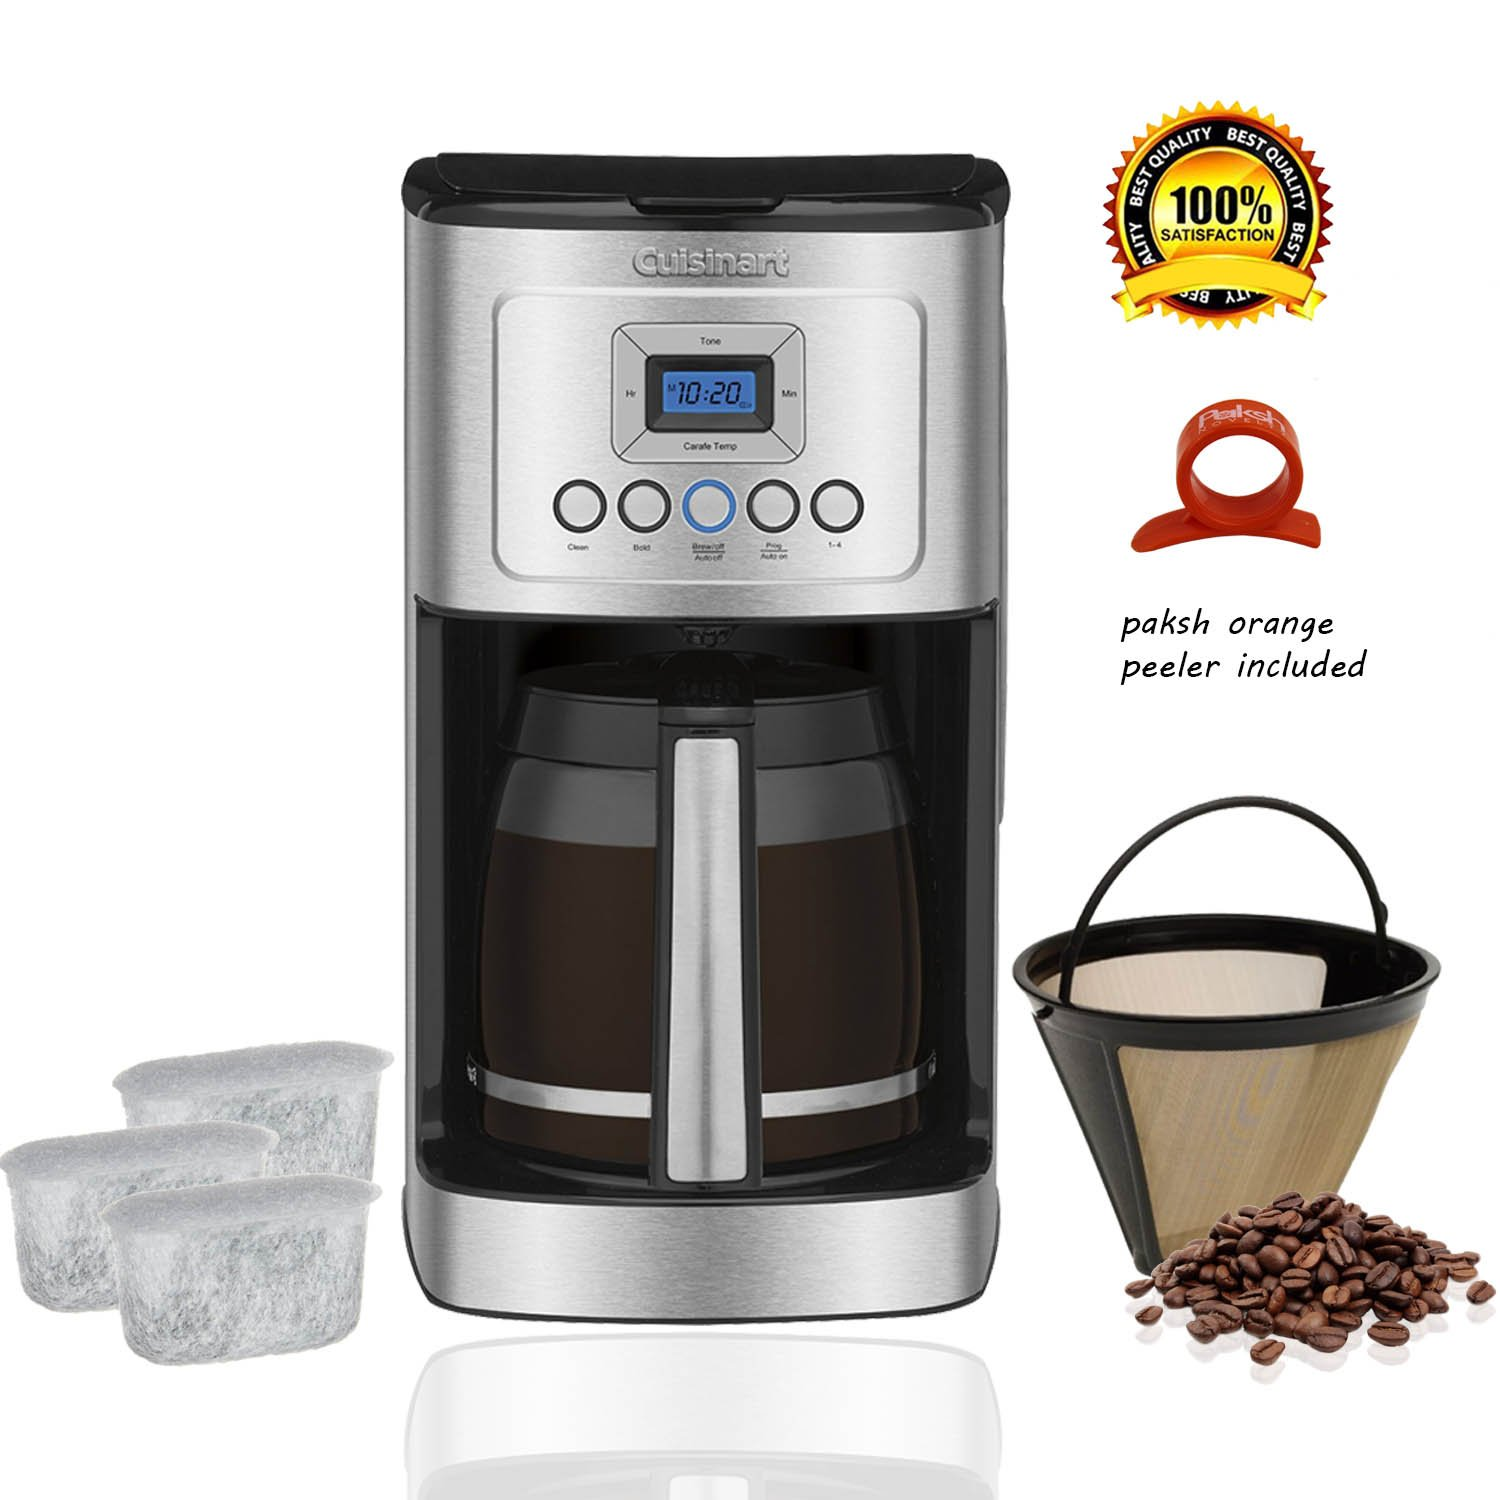 Bonavita Coffee Maker Gold Filter : NutriChef PKMFR10 Electric Milk Frother and Warmer, Stainless Steel DealFaves